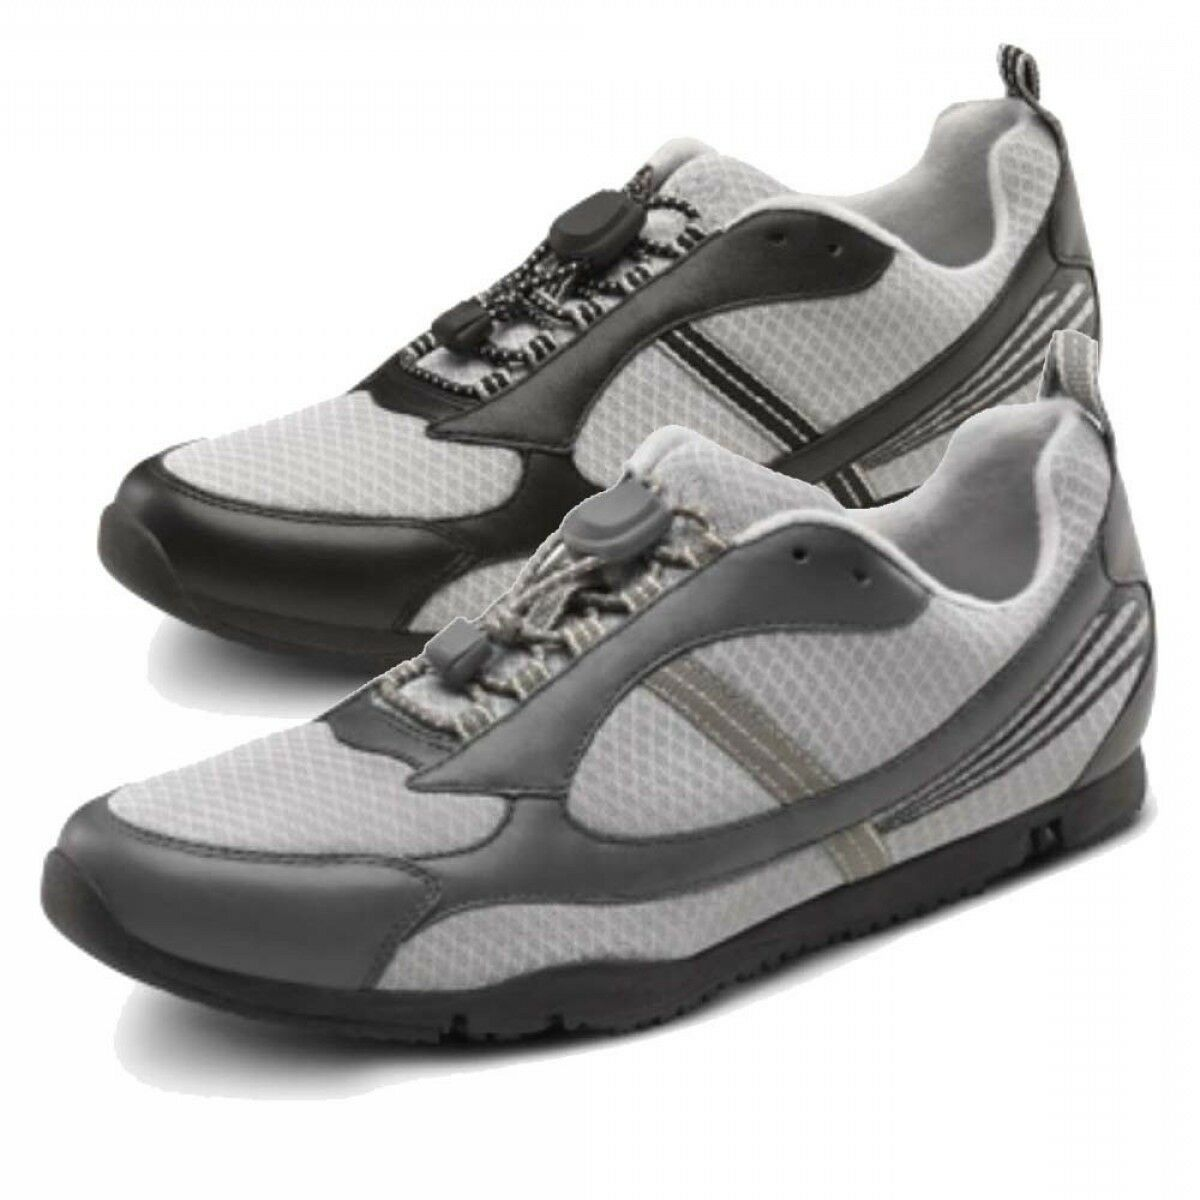 Dr. Comfort GARY OA Uomo's Athletic Scarpe for for for Knee Pain e5fd7d